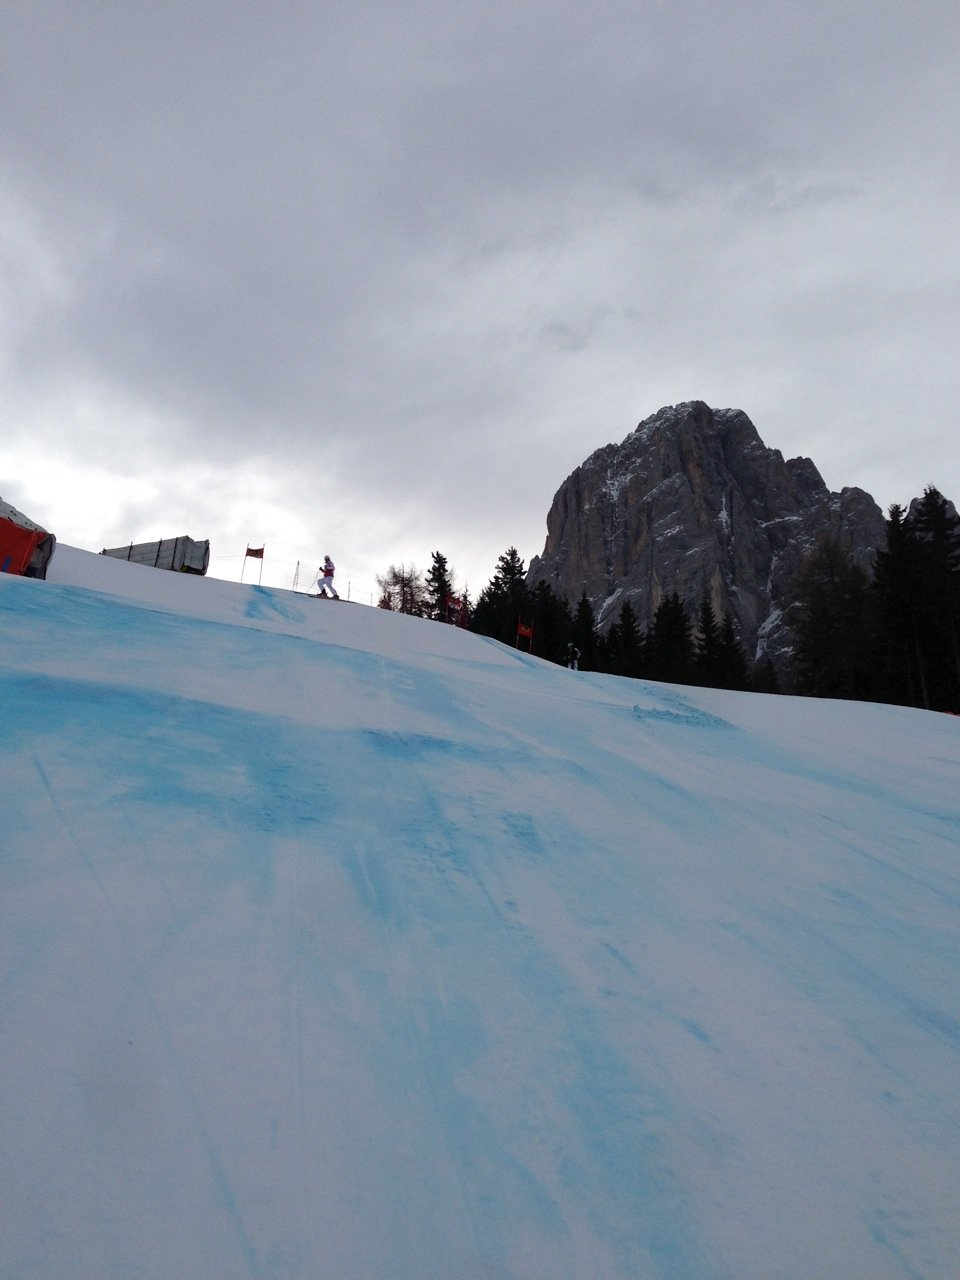 Looking back up at the takeoff of the Camel Jumps, Val Gardena.